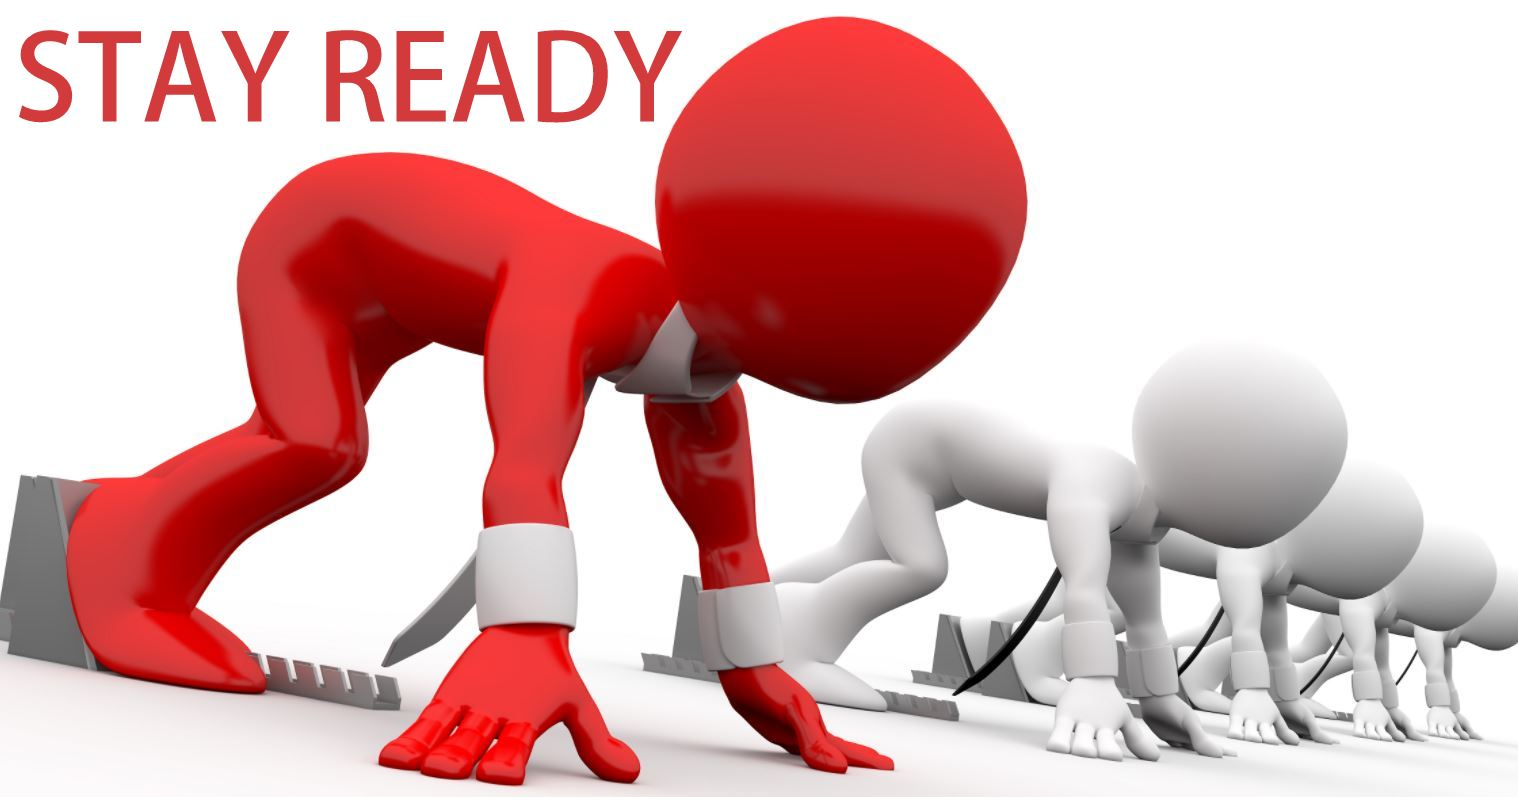 Stay ready with CRM